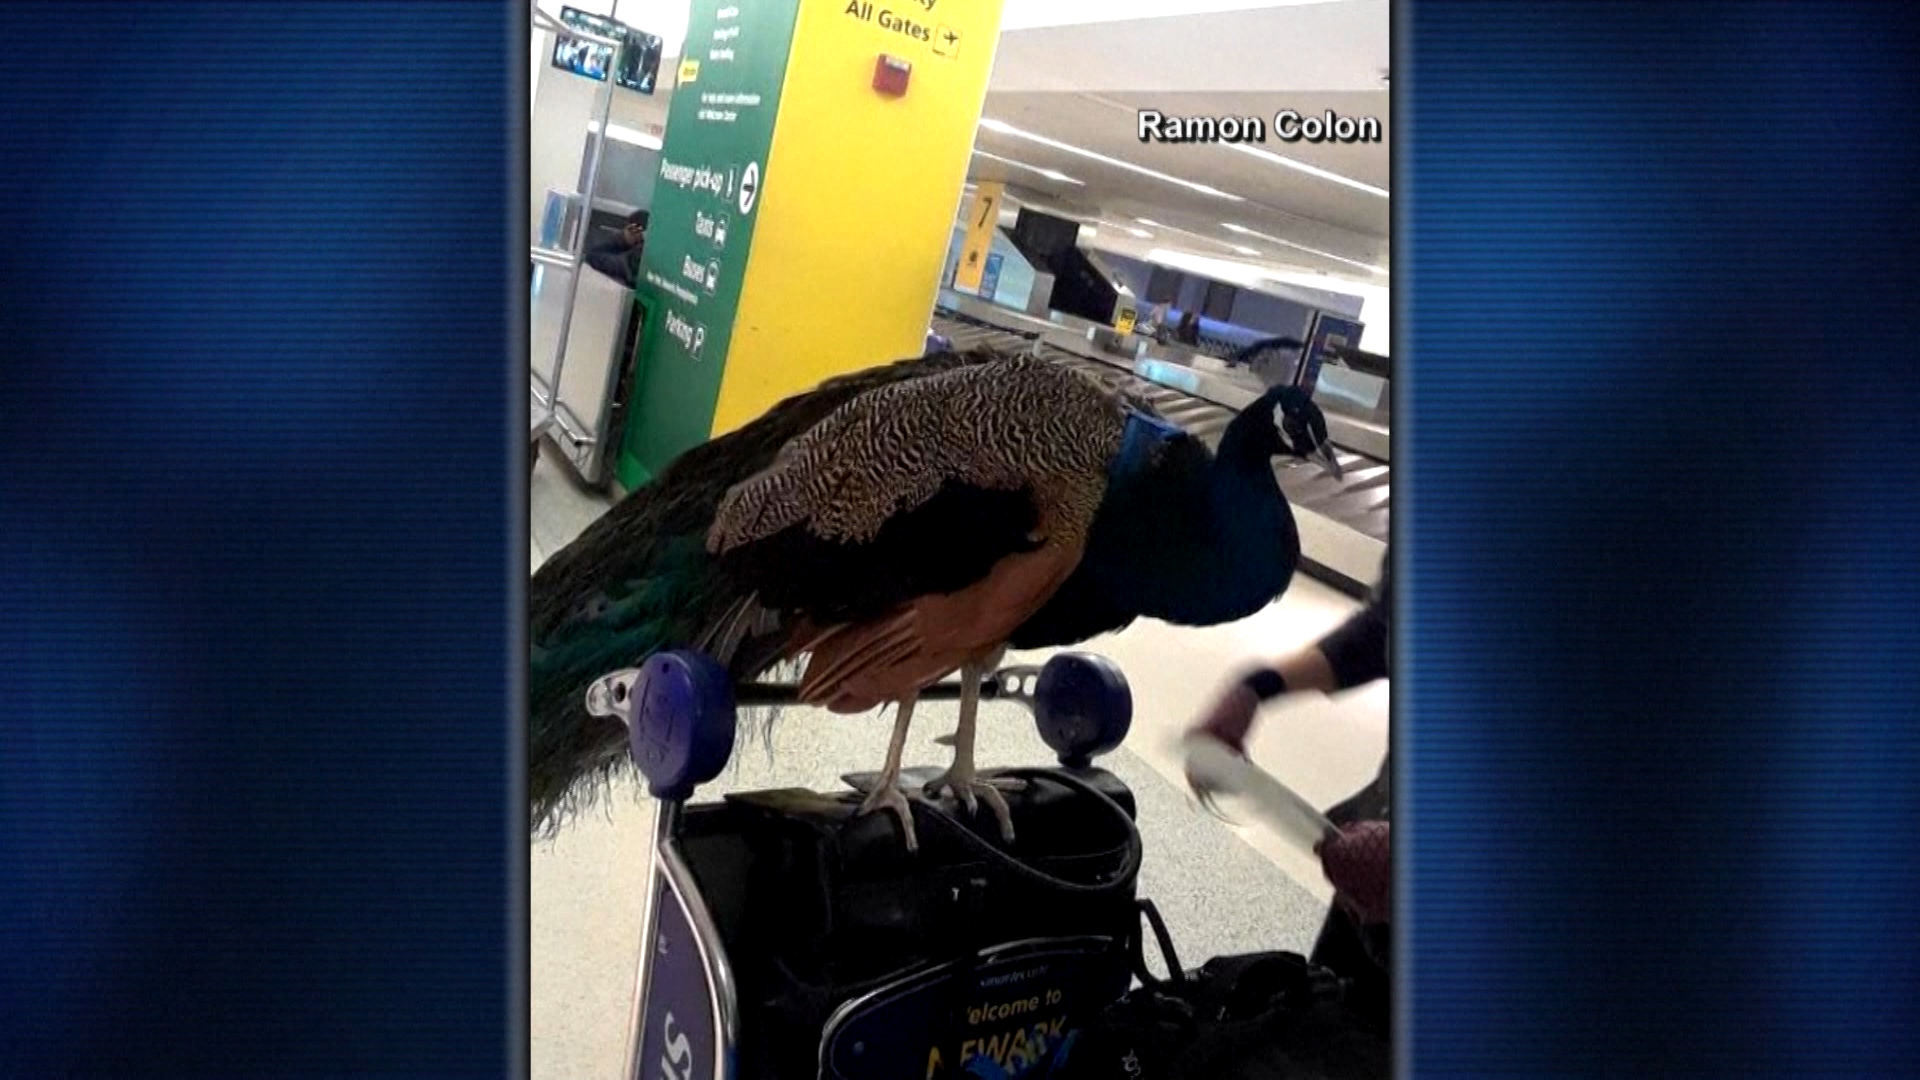 Fresh from peacock incident, United sets stricter standards for emotional support animals